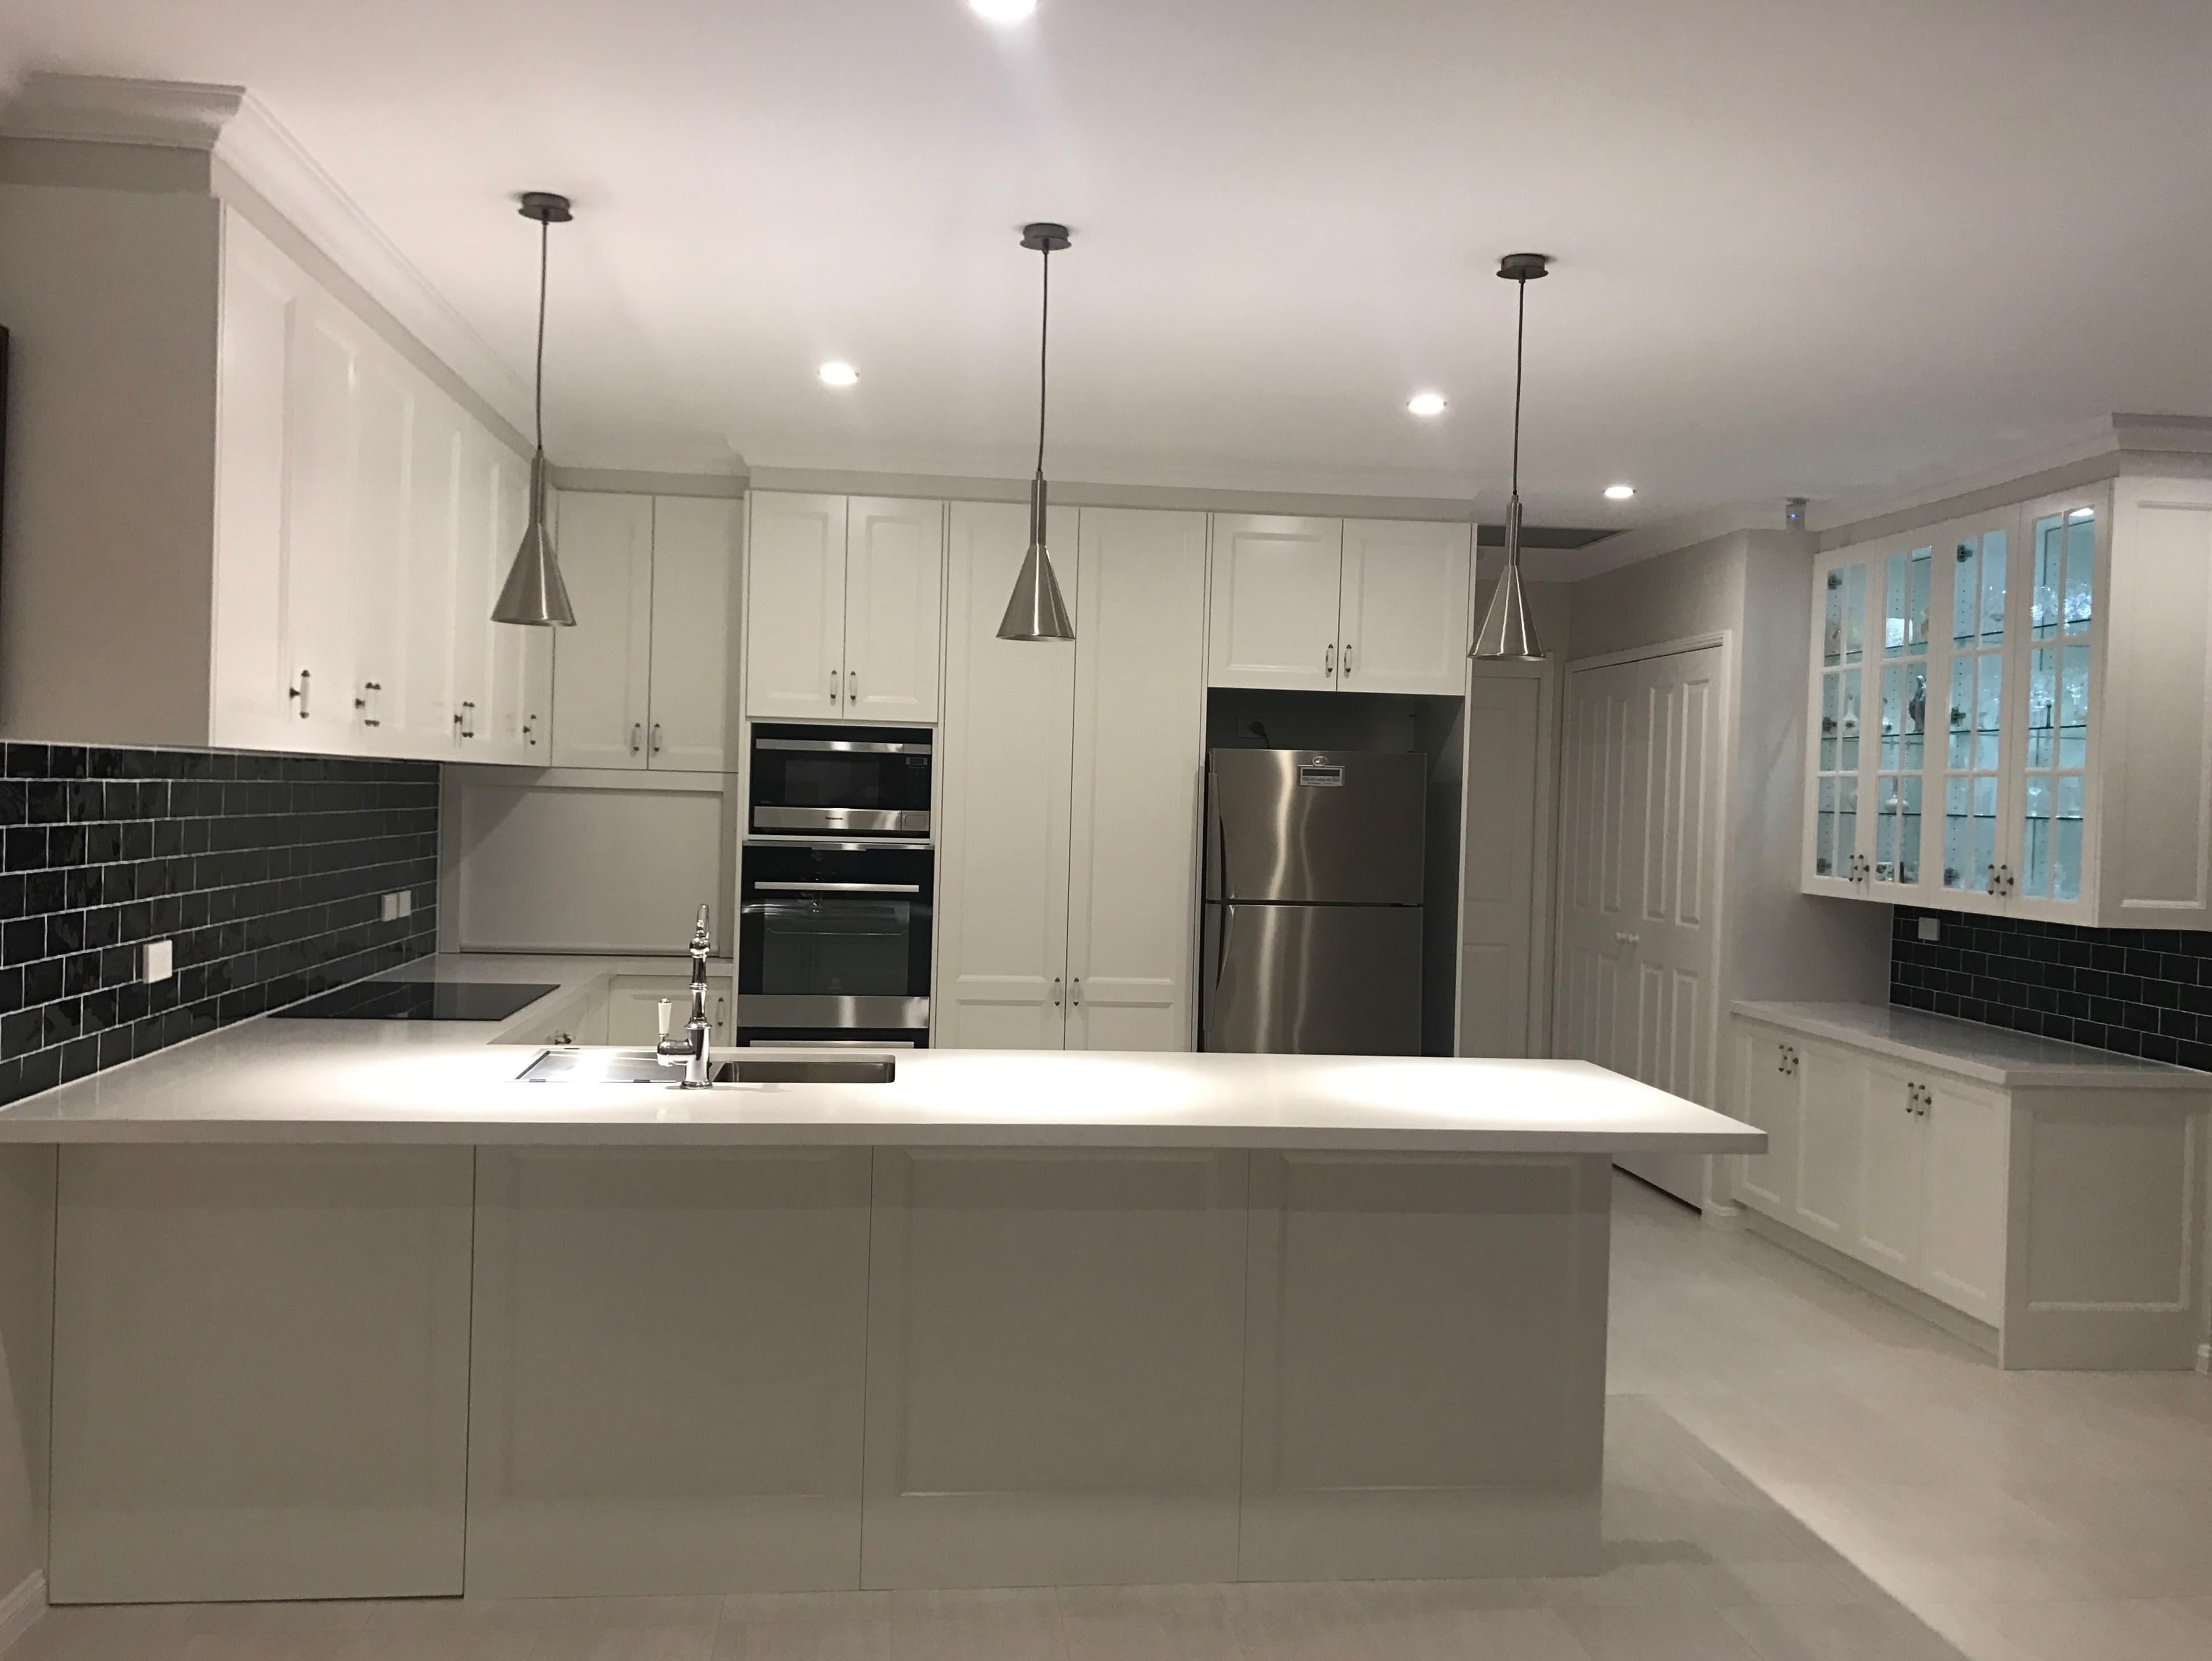 Ettalong Beach kitchen renovation project